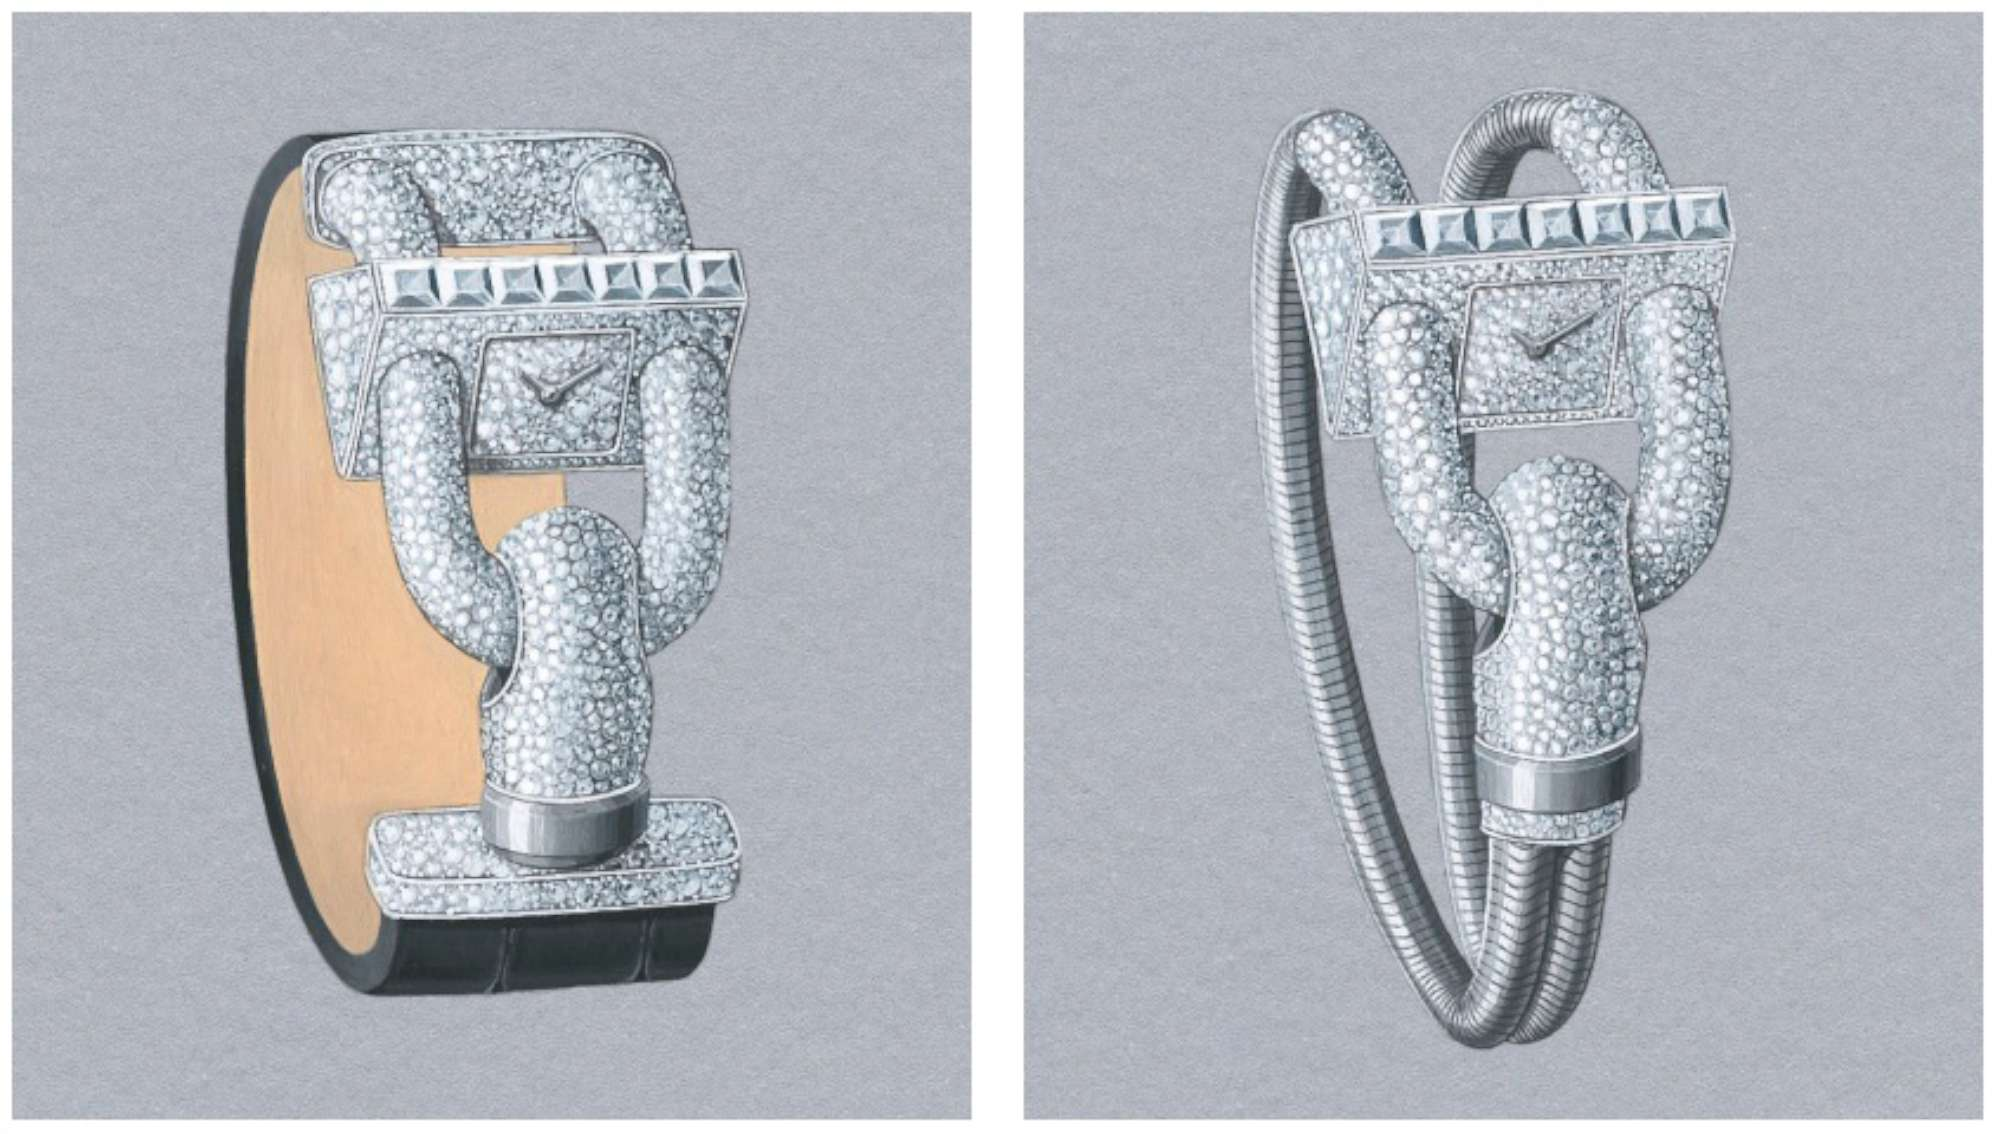 Cadenas Pavée (left) and Cadenas Pavée Bracelet Or (right), with Princess-cut diamonds on the top of the watch case, and snow-set diamonds covering much of the rest